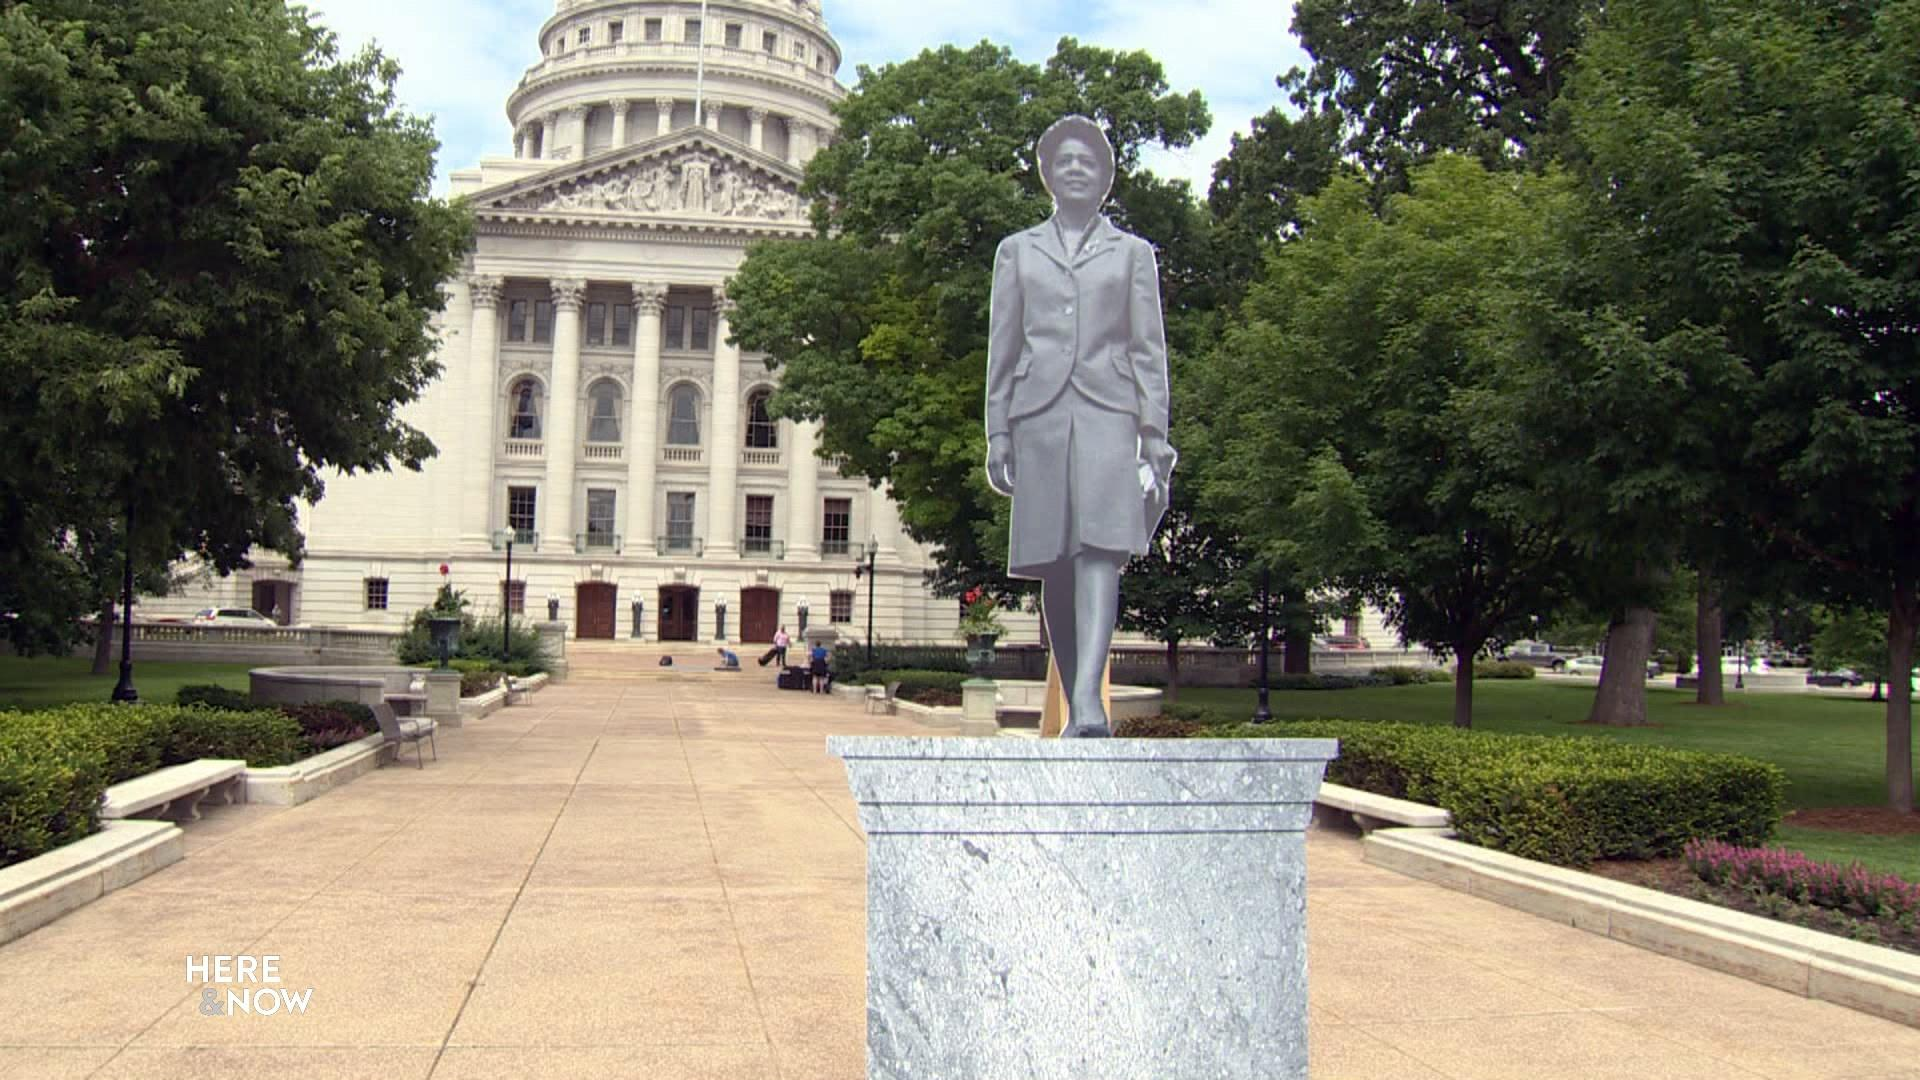 Previewing a Statue of Vel Phillips